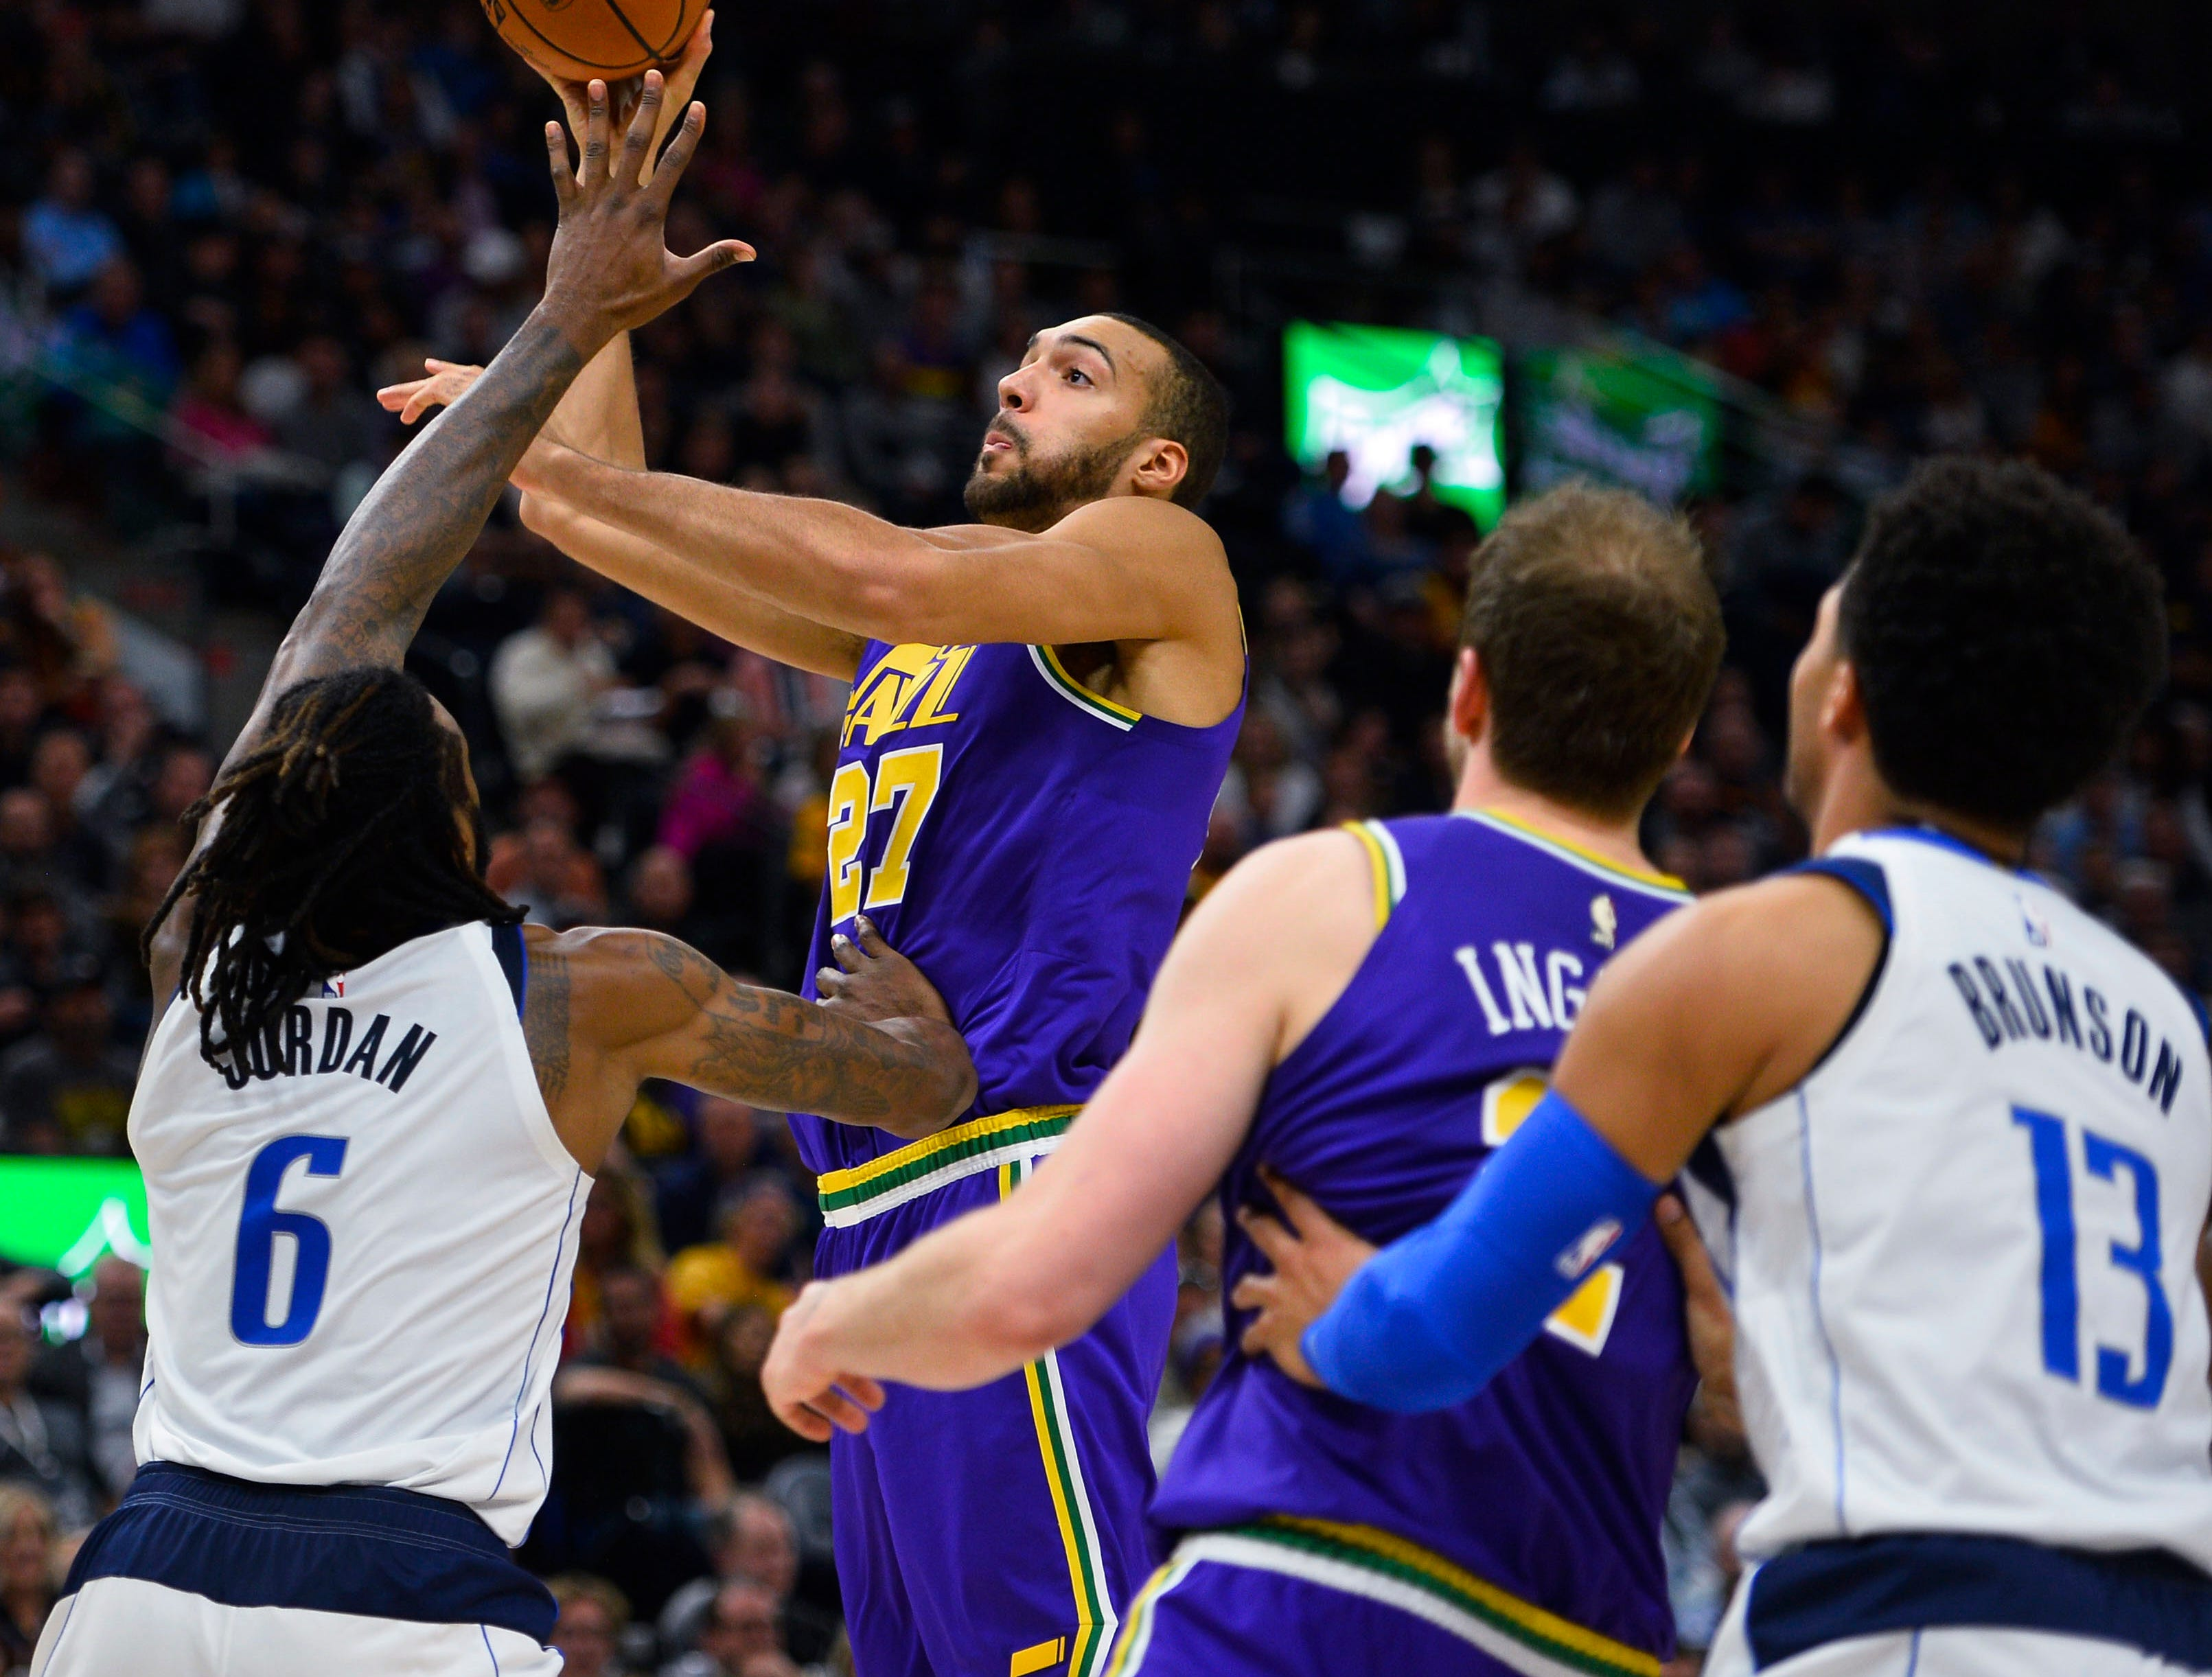 Utah Jazz center Rudy Gobert (27) shoots over Dallas Mavericks center DeAndre Jordan (6) during the first half of an NBA basketball game Wednesday, Nov. 7, 2018, in Salt Lake City. (AP Photo/Alex Goodlett)